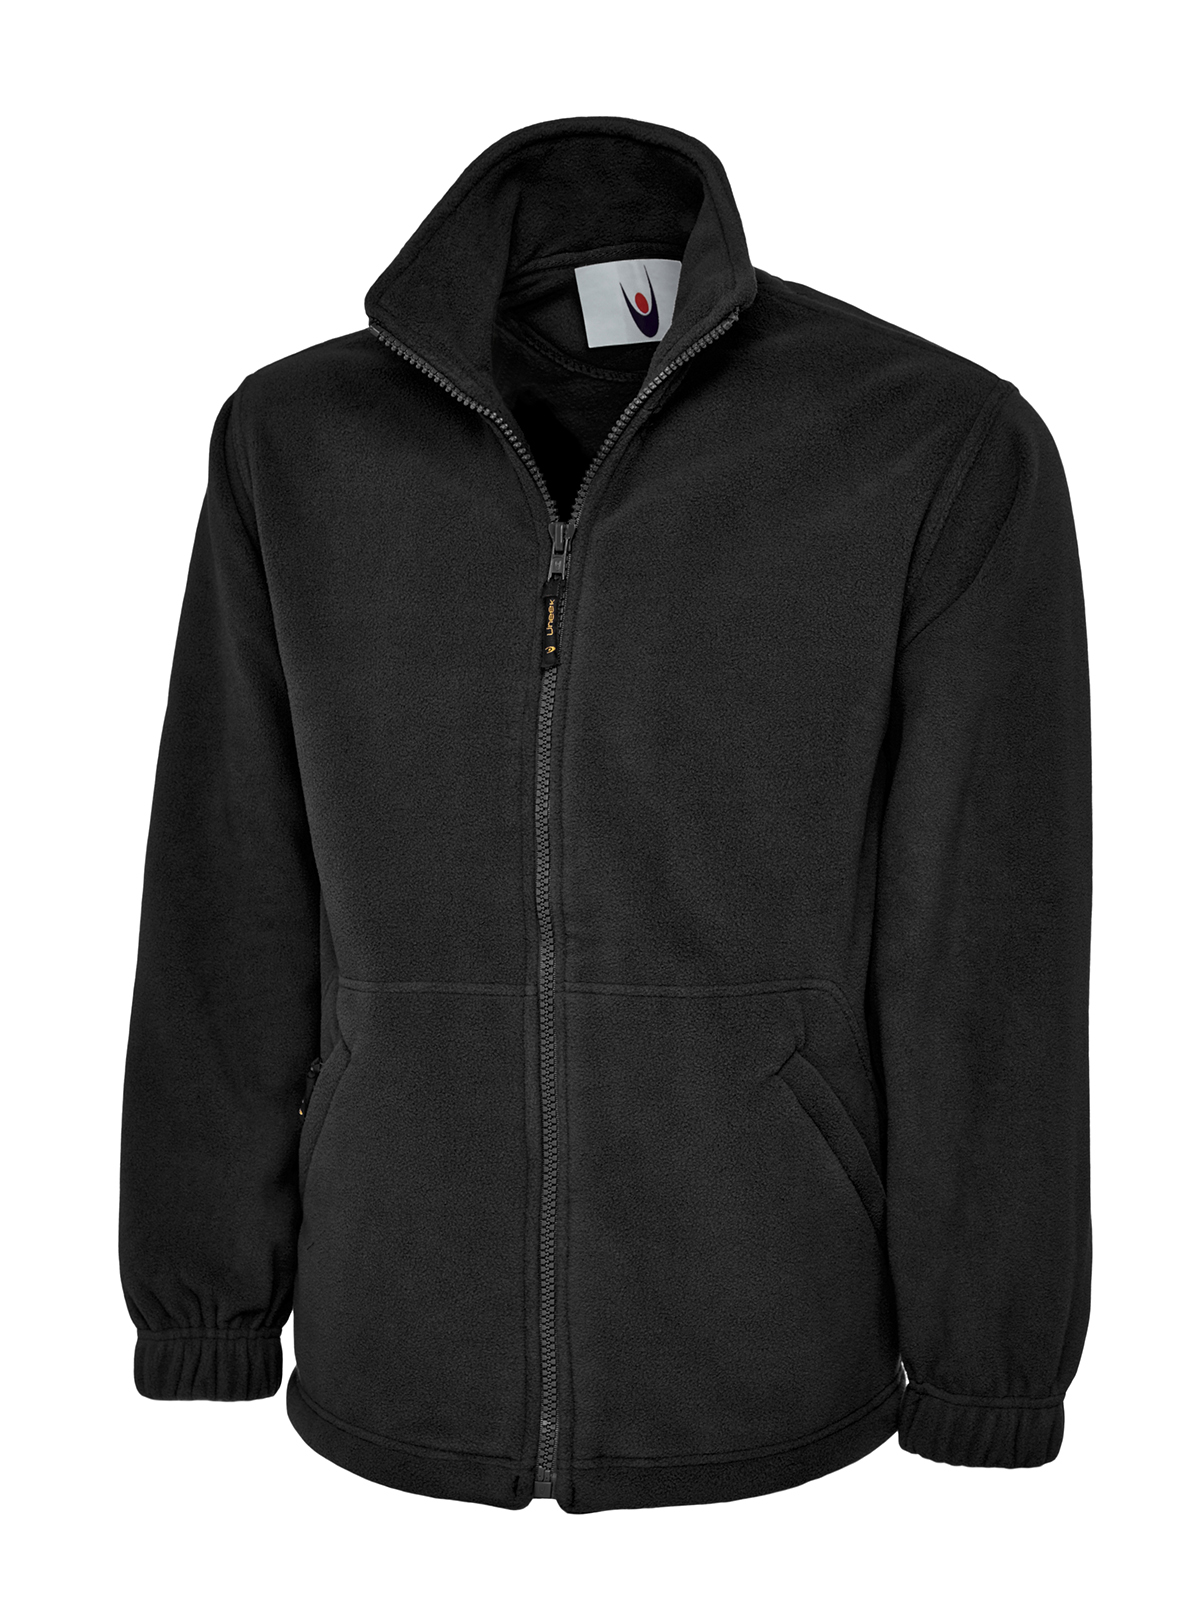 UNEEK UC604 CLASSIC FULL ZIP FLEECE JACKET